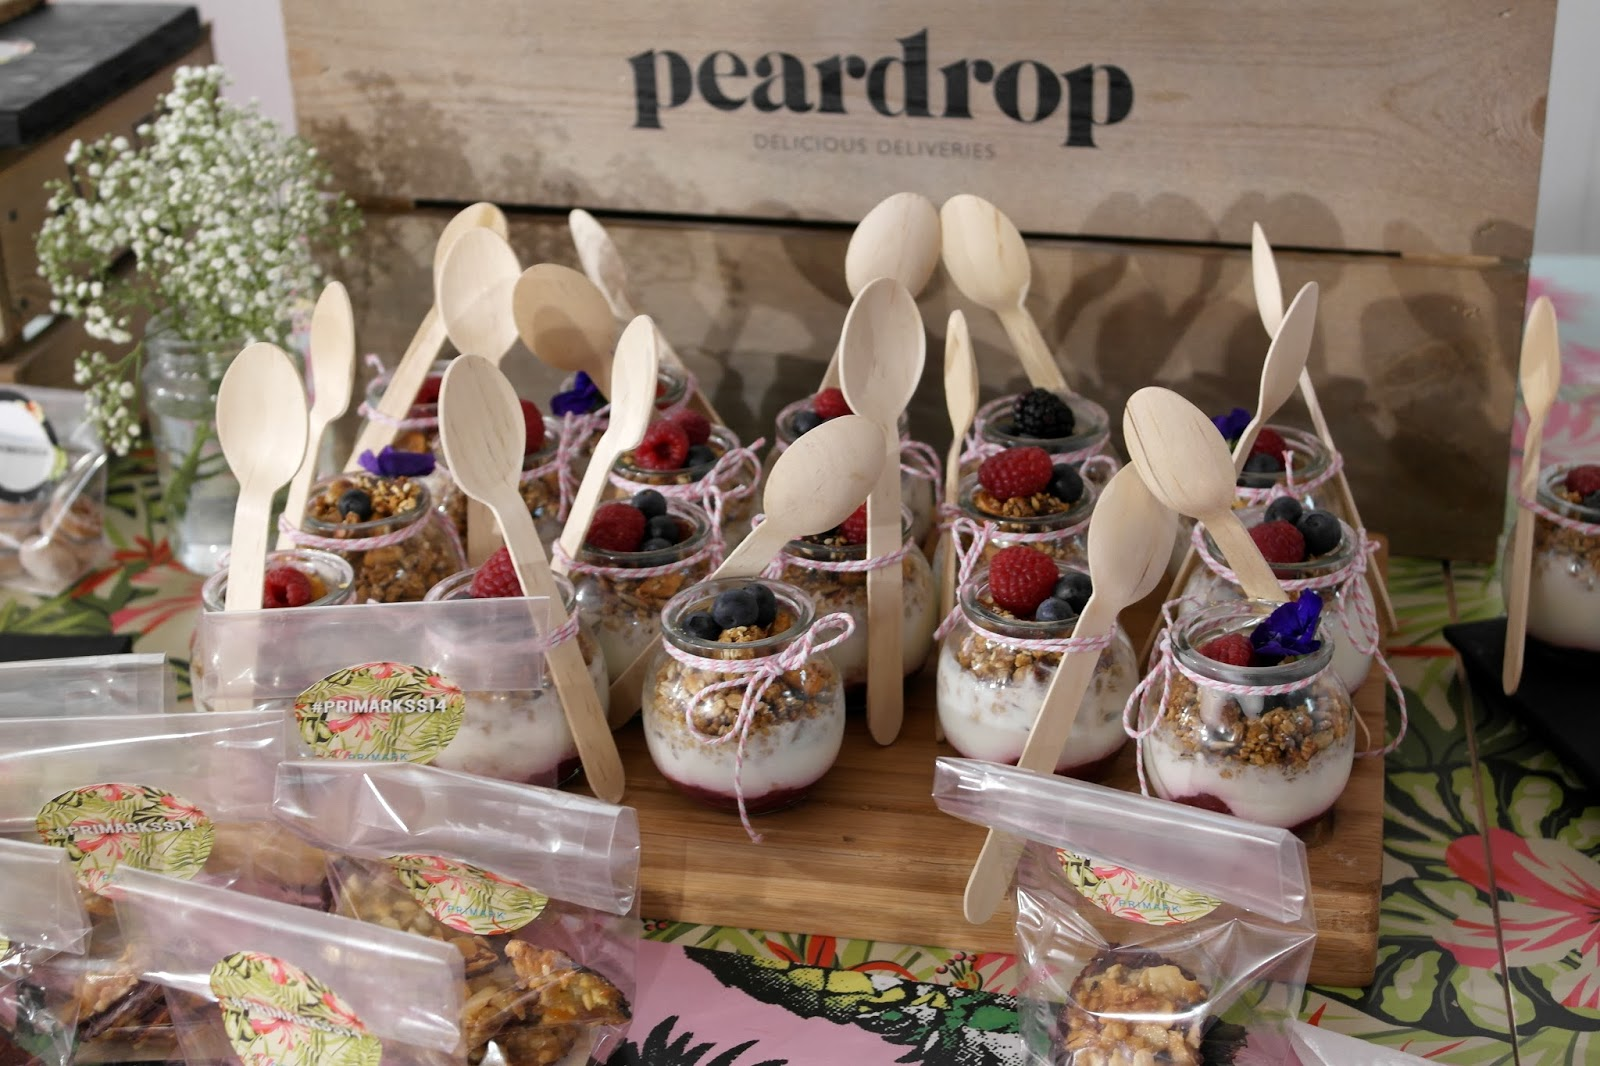 Peardrop delicious deliveries @ Primark spring14 pressday London PrimarkSS14